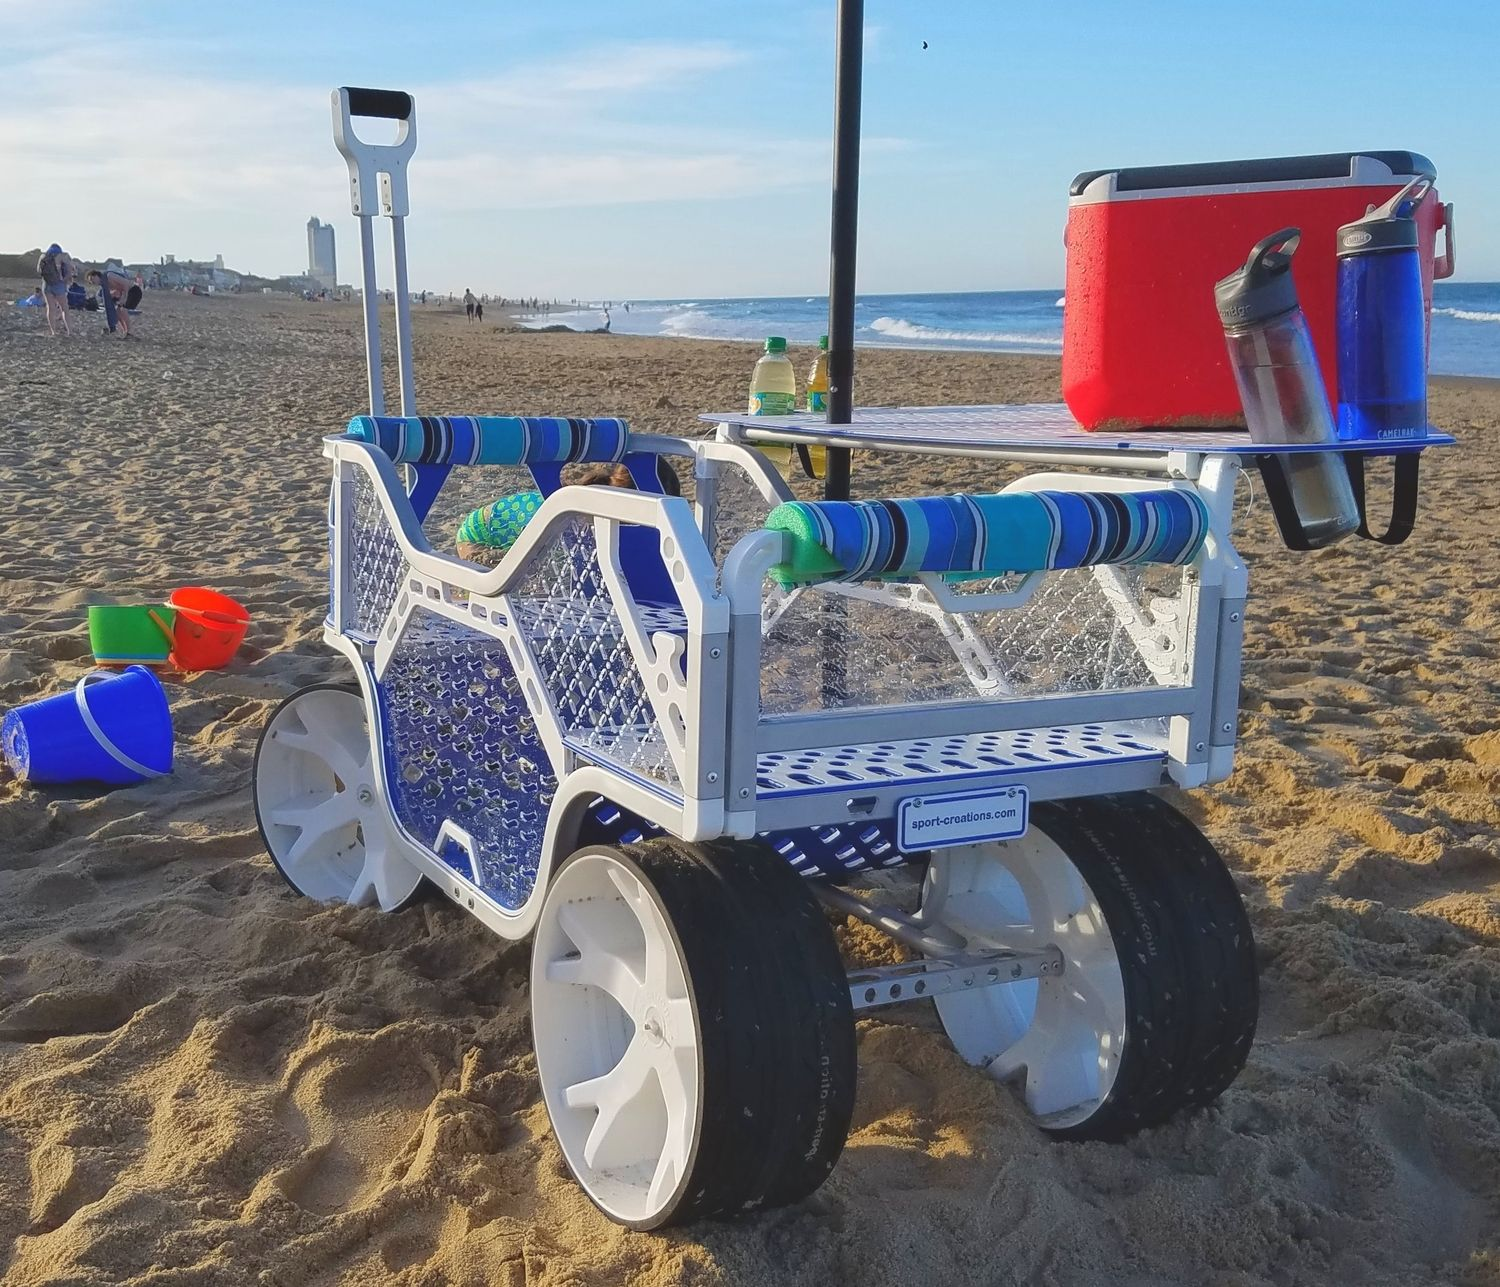 Beach cart with wide wheels to cruise over the sand a moveable